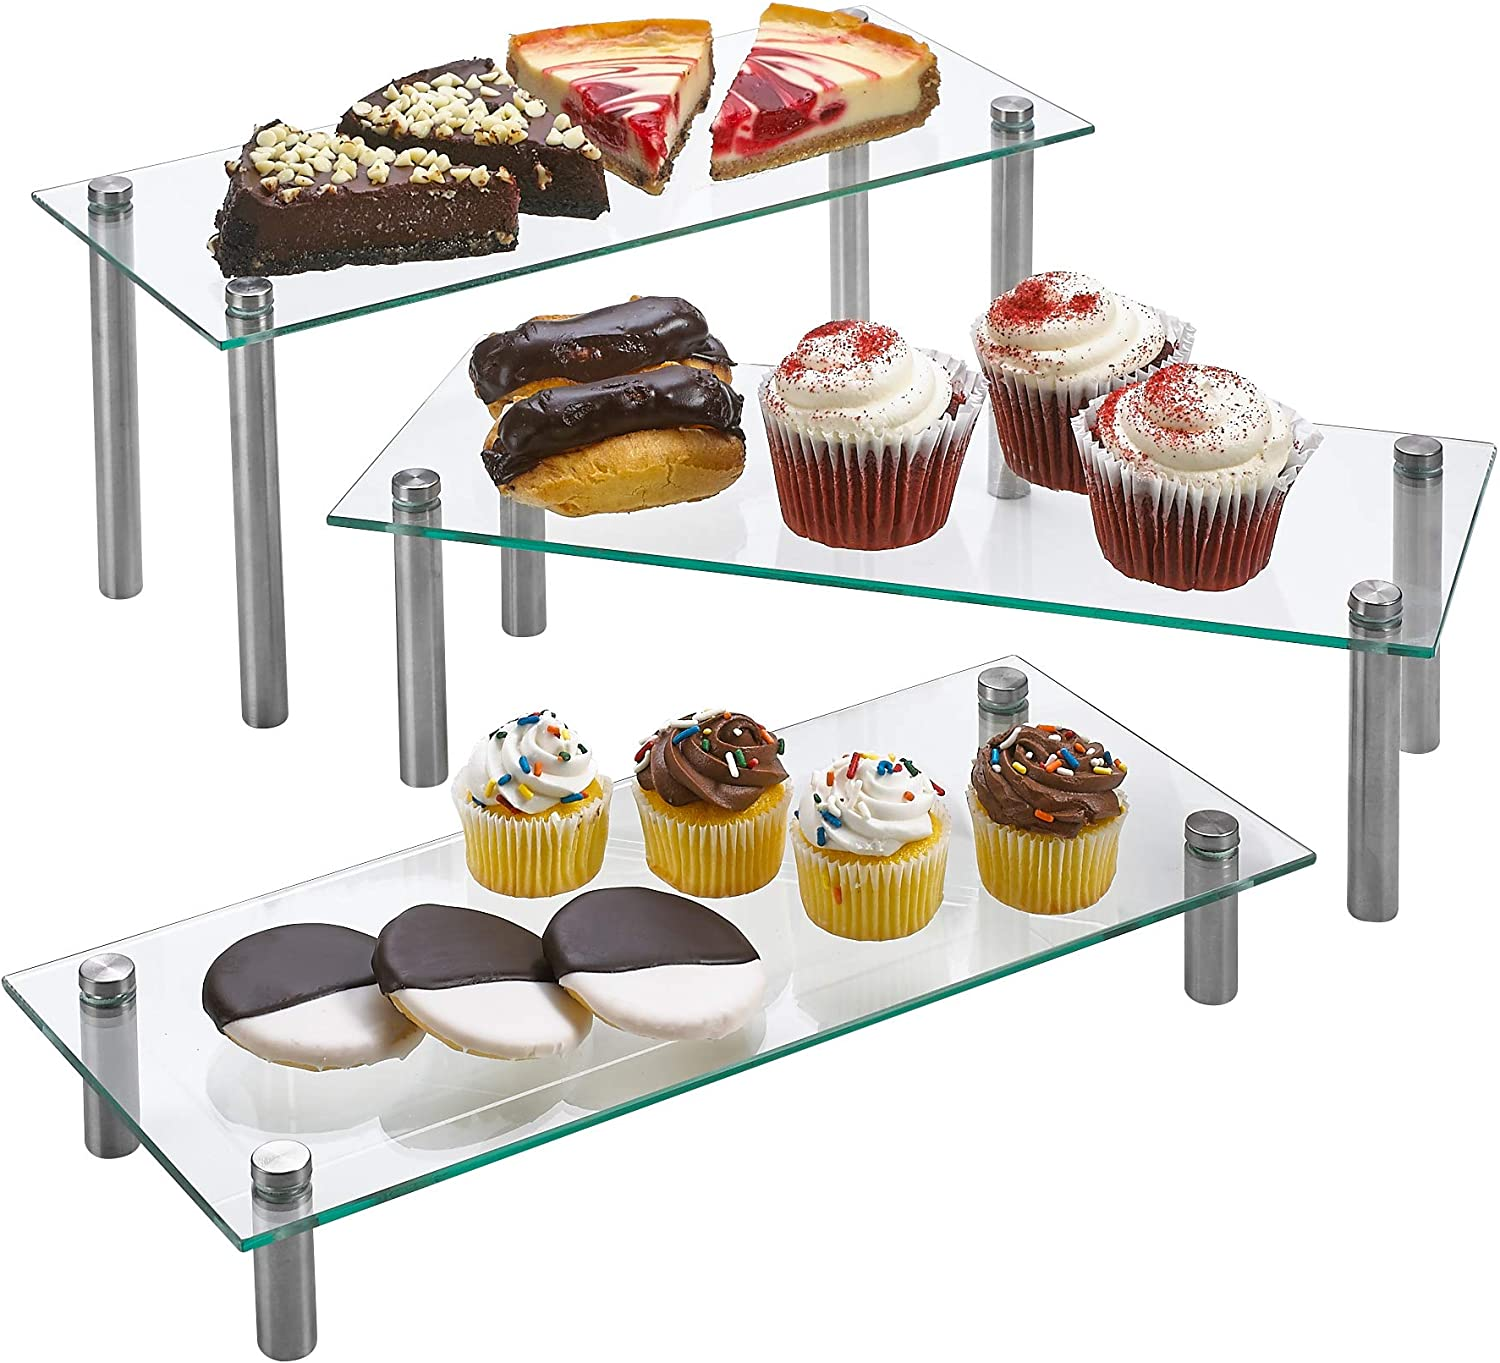 3 Tier Rectangle Tempered Glass Retail Display Stand 5 x 12 Incch for Cupcakes, Dessert, Bags, Perfume – Set of 3 Glass Display Raisers. (Clear)